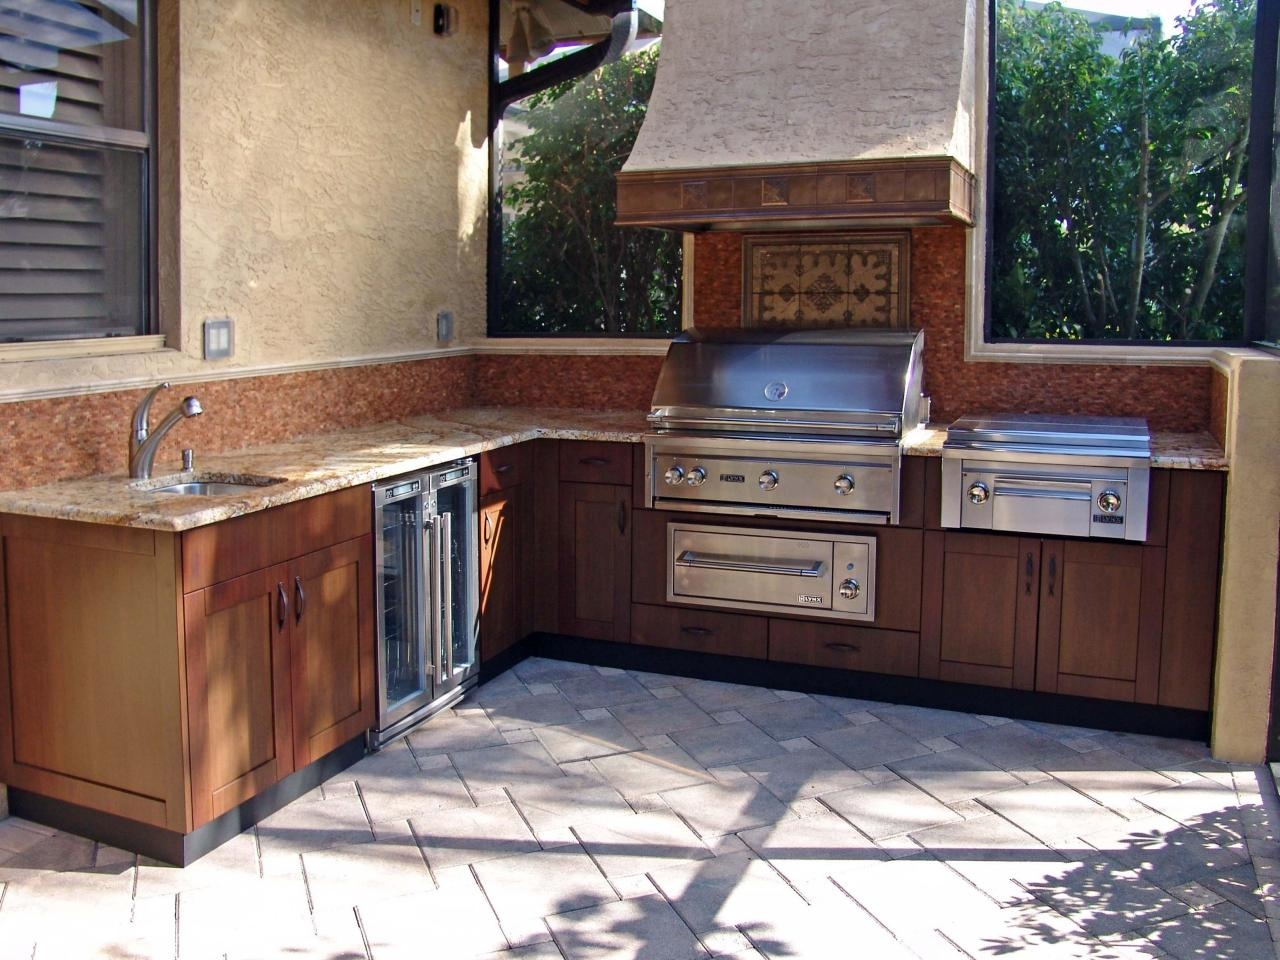 trend of prefabricated outdoor kitchen cabinets kitchen ideas